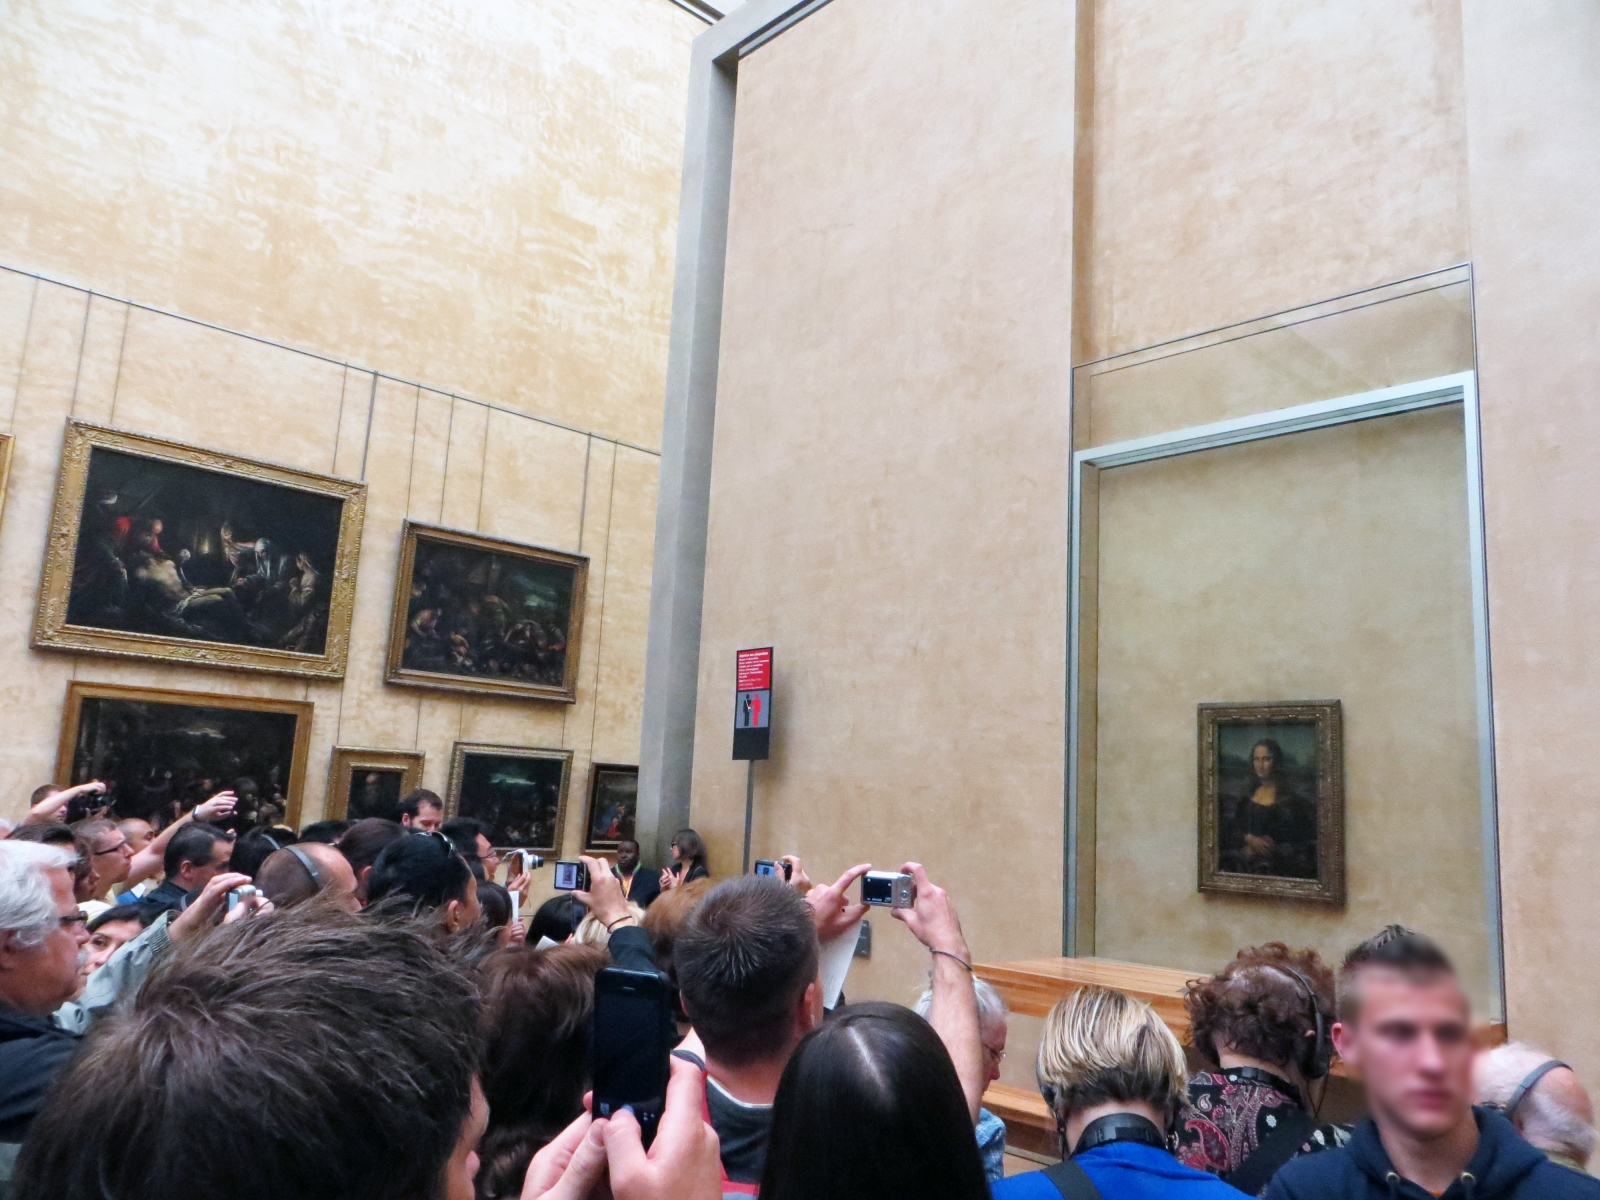 The Mona Lisa - Paris, France